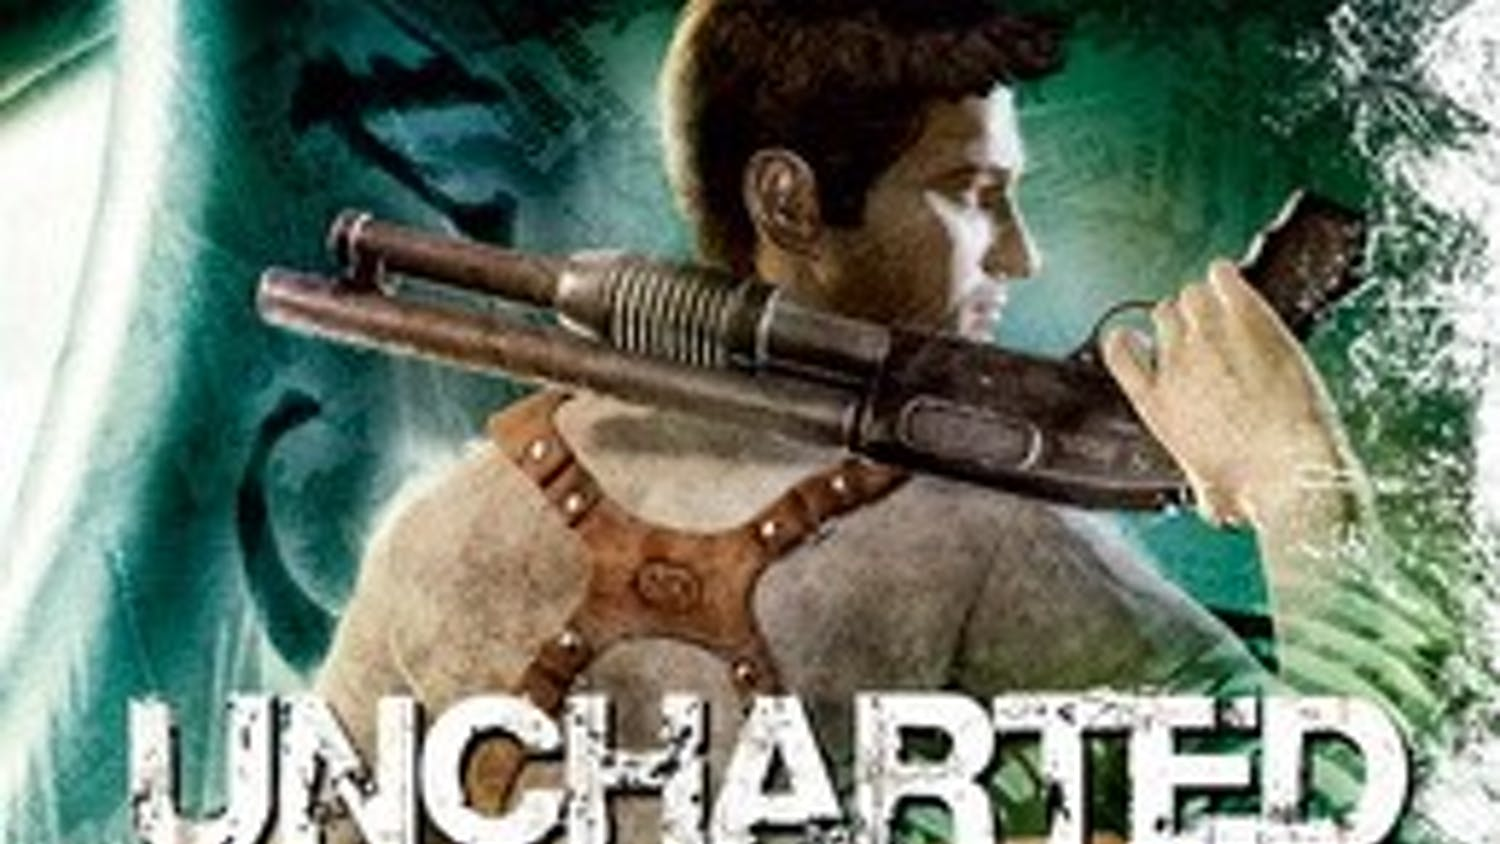 """While all of their games contributed to their immense success, the """"Uncharted"""" series was the biggest turning point of Naughty Dog's career."""